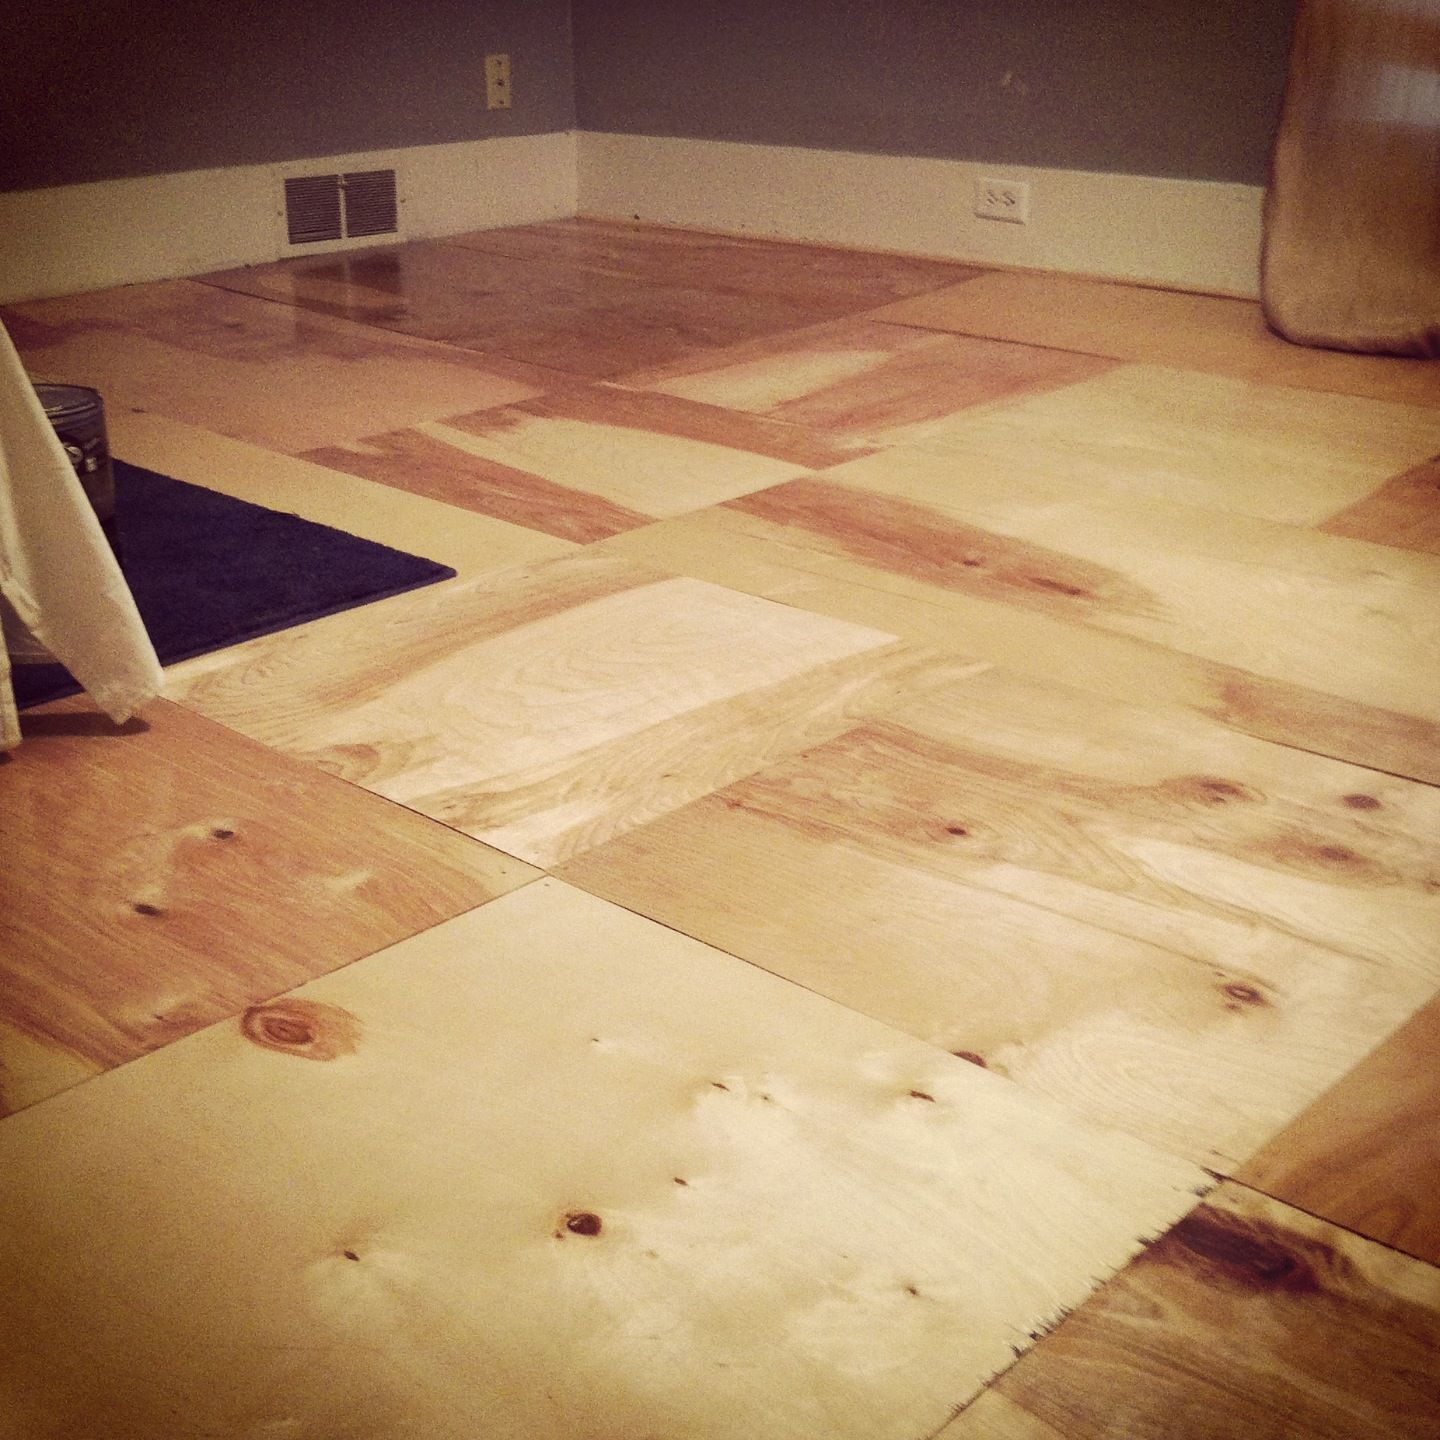 Design Plywood Flooring plywood floors all you need to know articles and sheets high gloss polyurethane some elbow grease brand new inexpensive beautiful